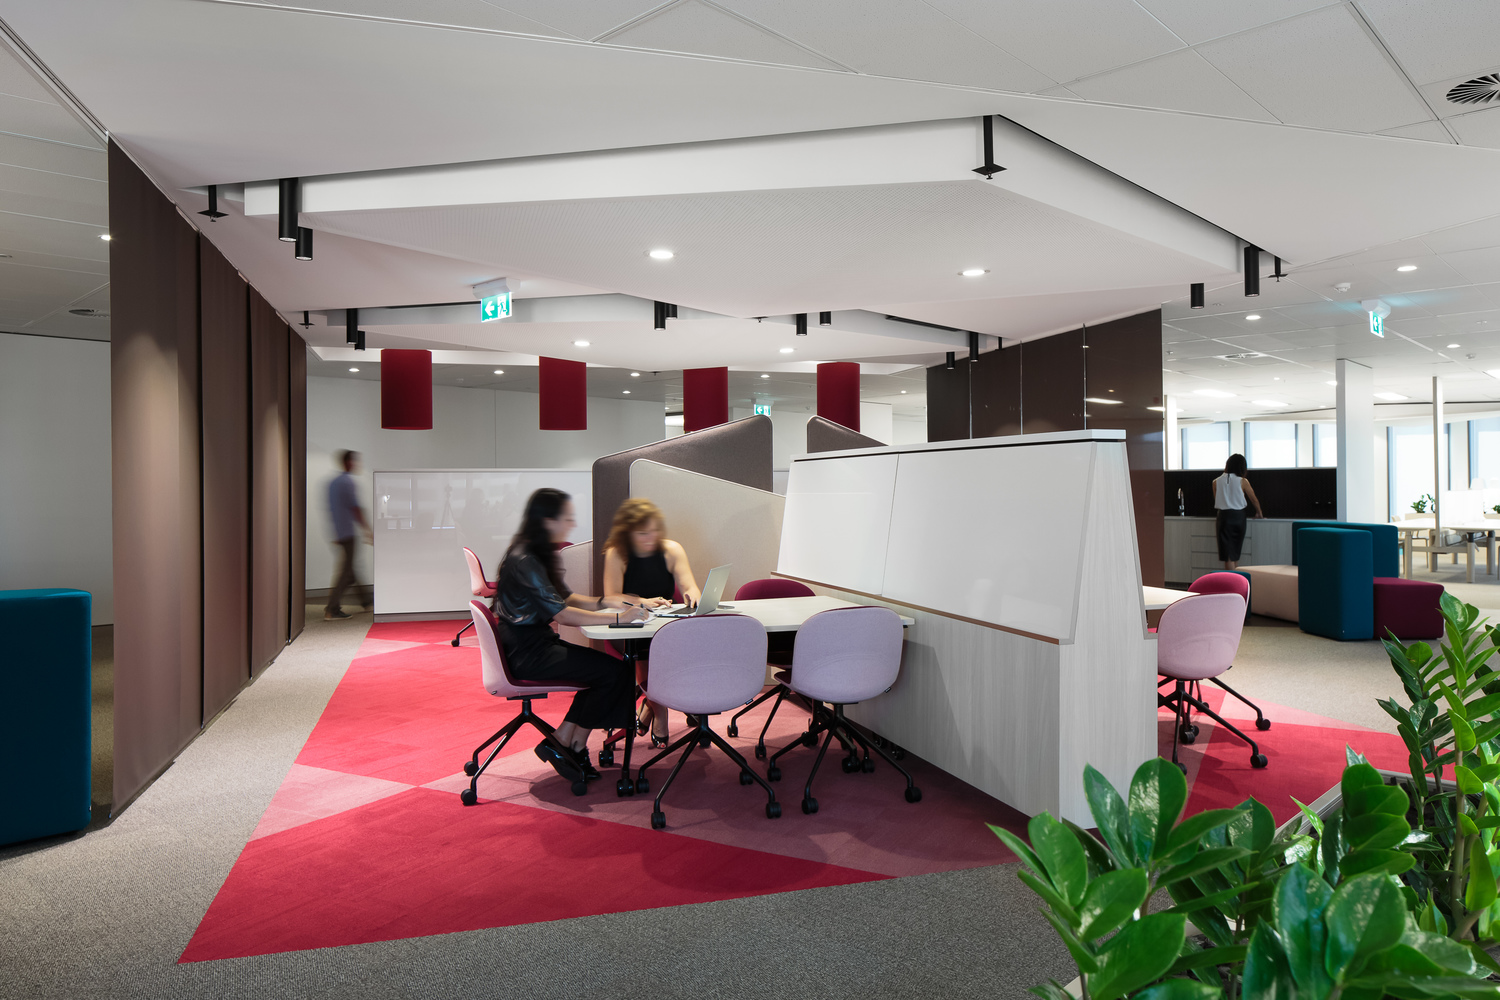 303339_Macquarie_University_Angel_Place_N22_medium